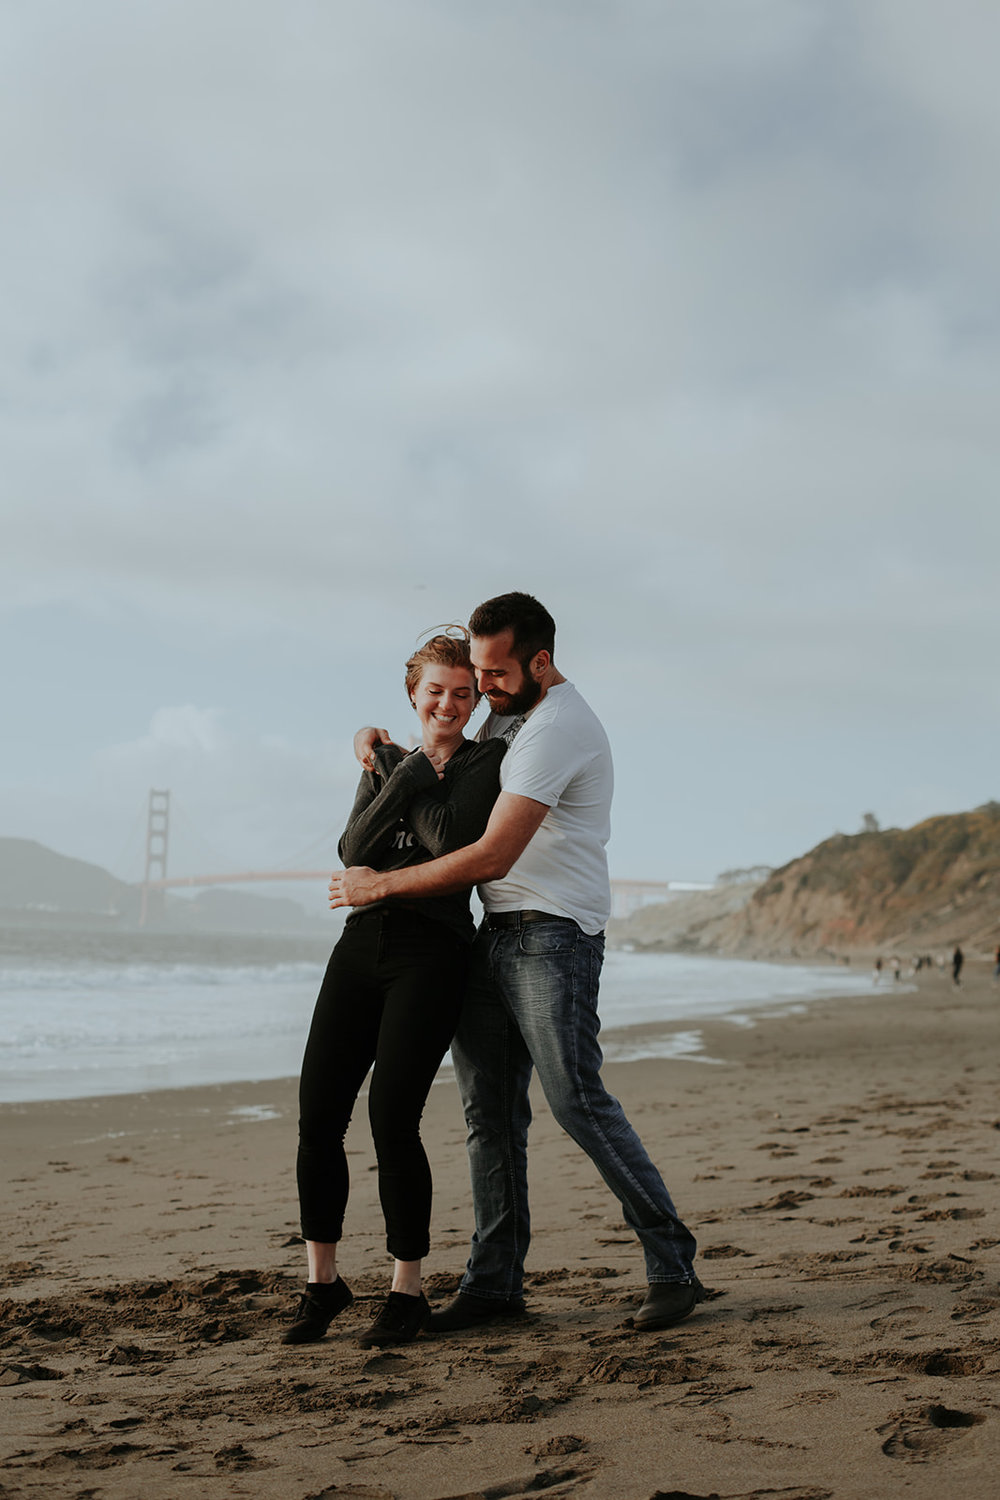 Rachel-and-Duncan-sanfran-engagement-session-earthbelowphoto-2018-56.jpg